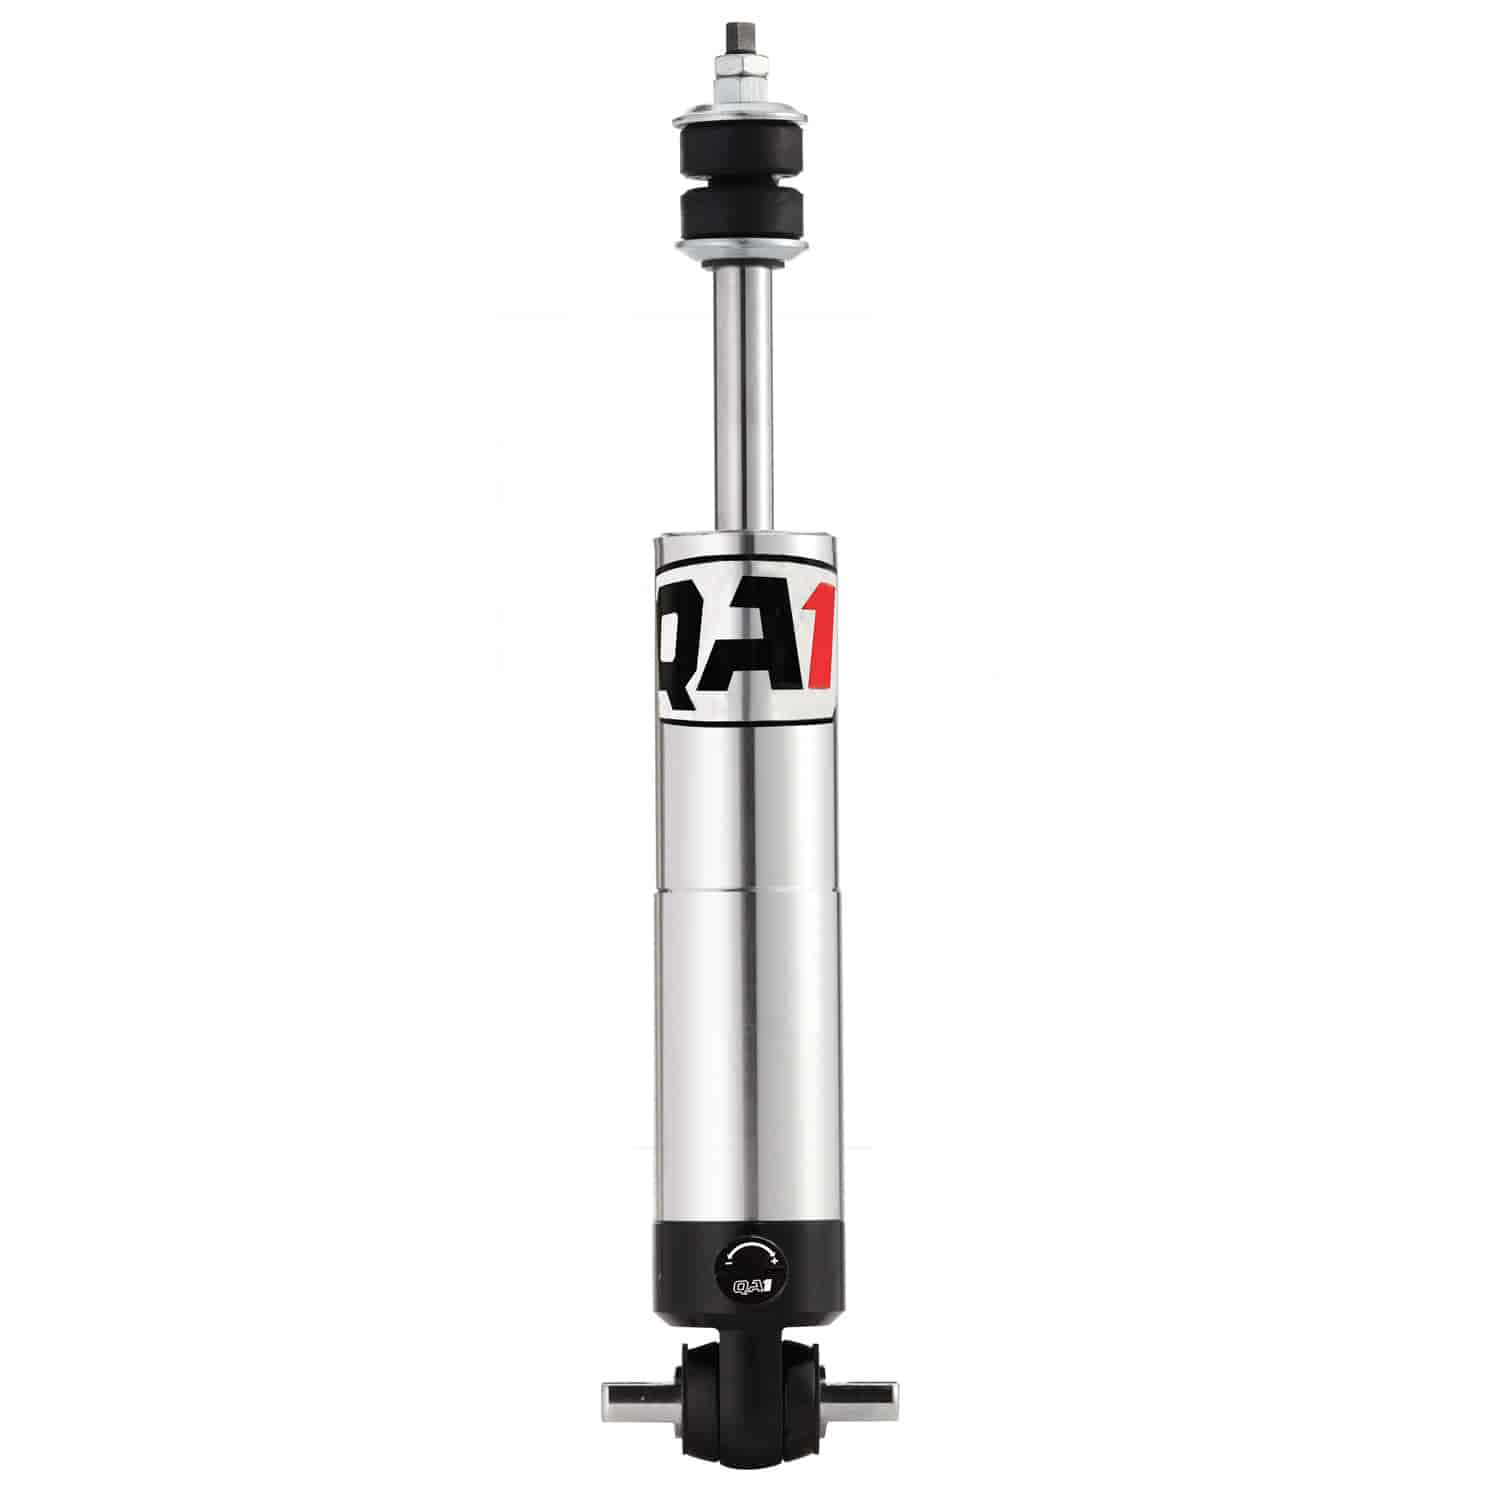 QA1 TS601 - QA1 Stocker Star Adjustable Shocks